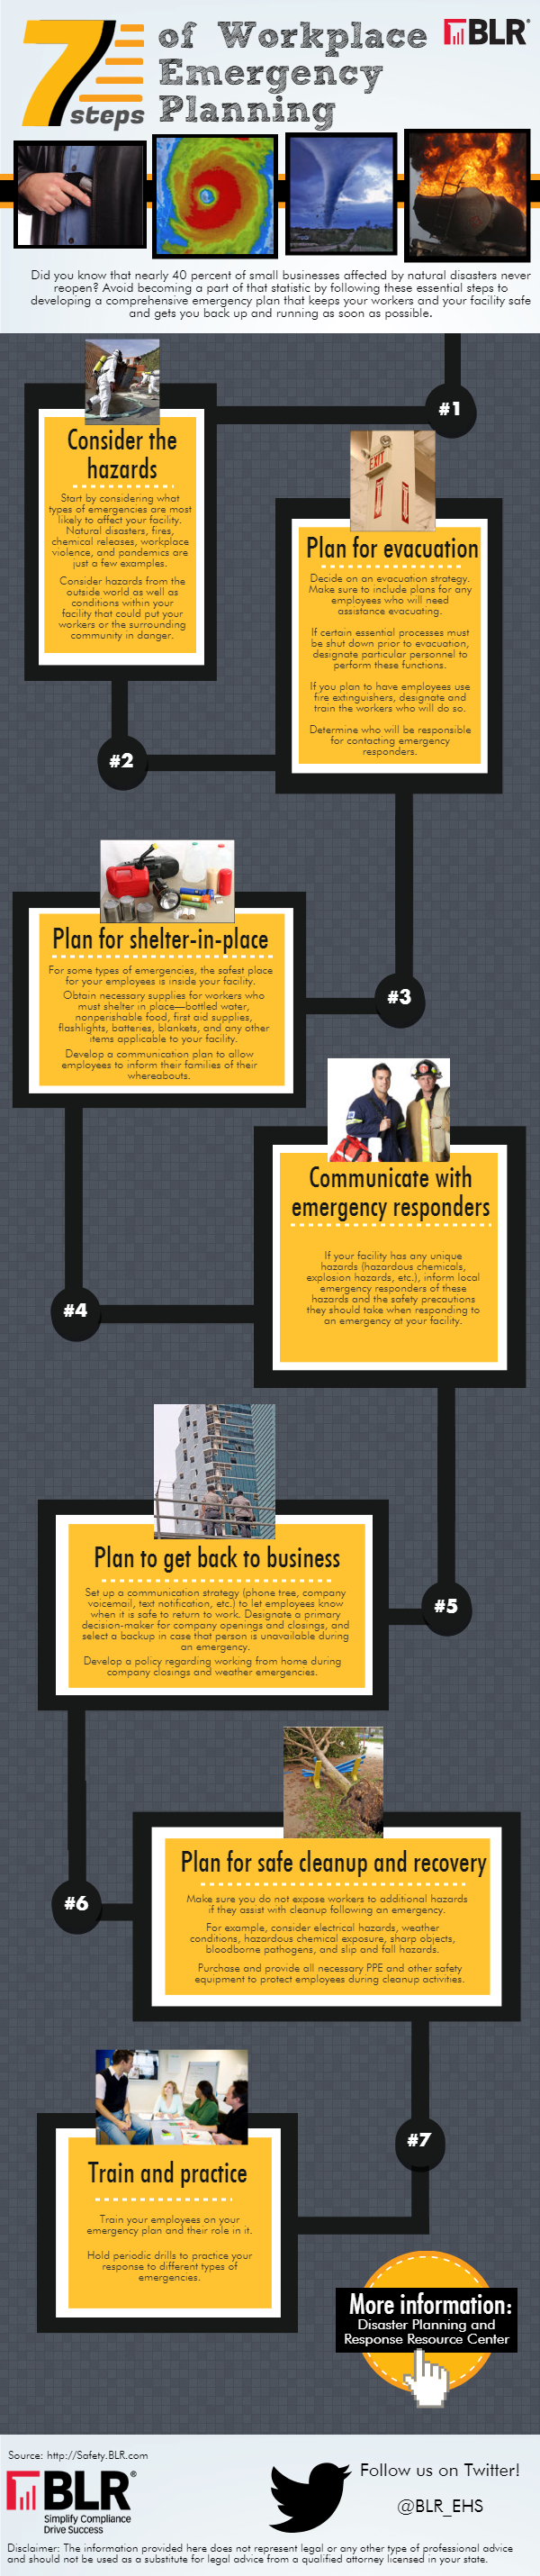 7 Steps of Workplace Emergency Planning - Atlantictraining.com